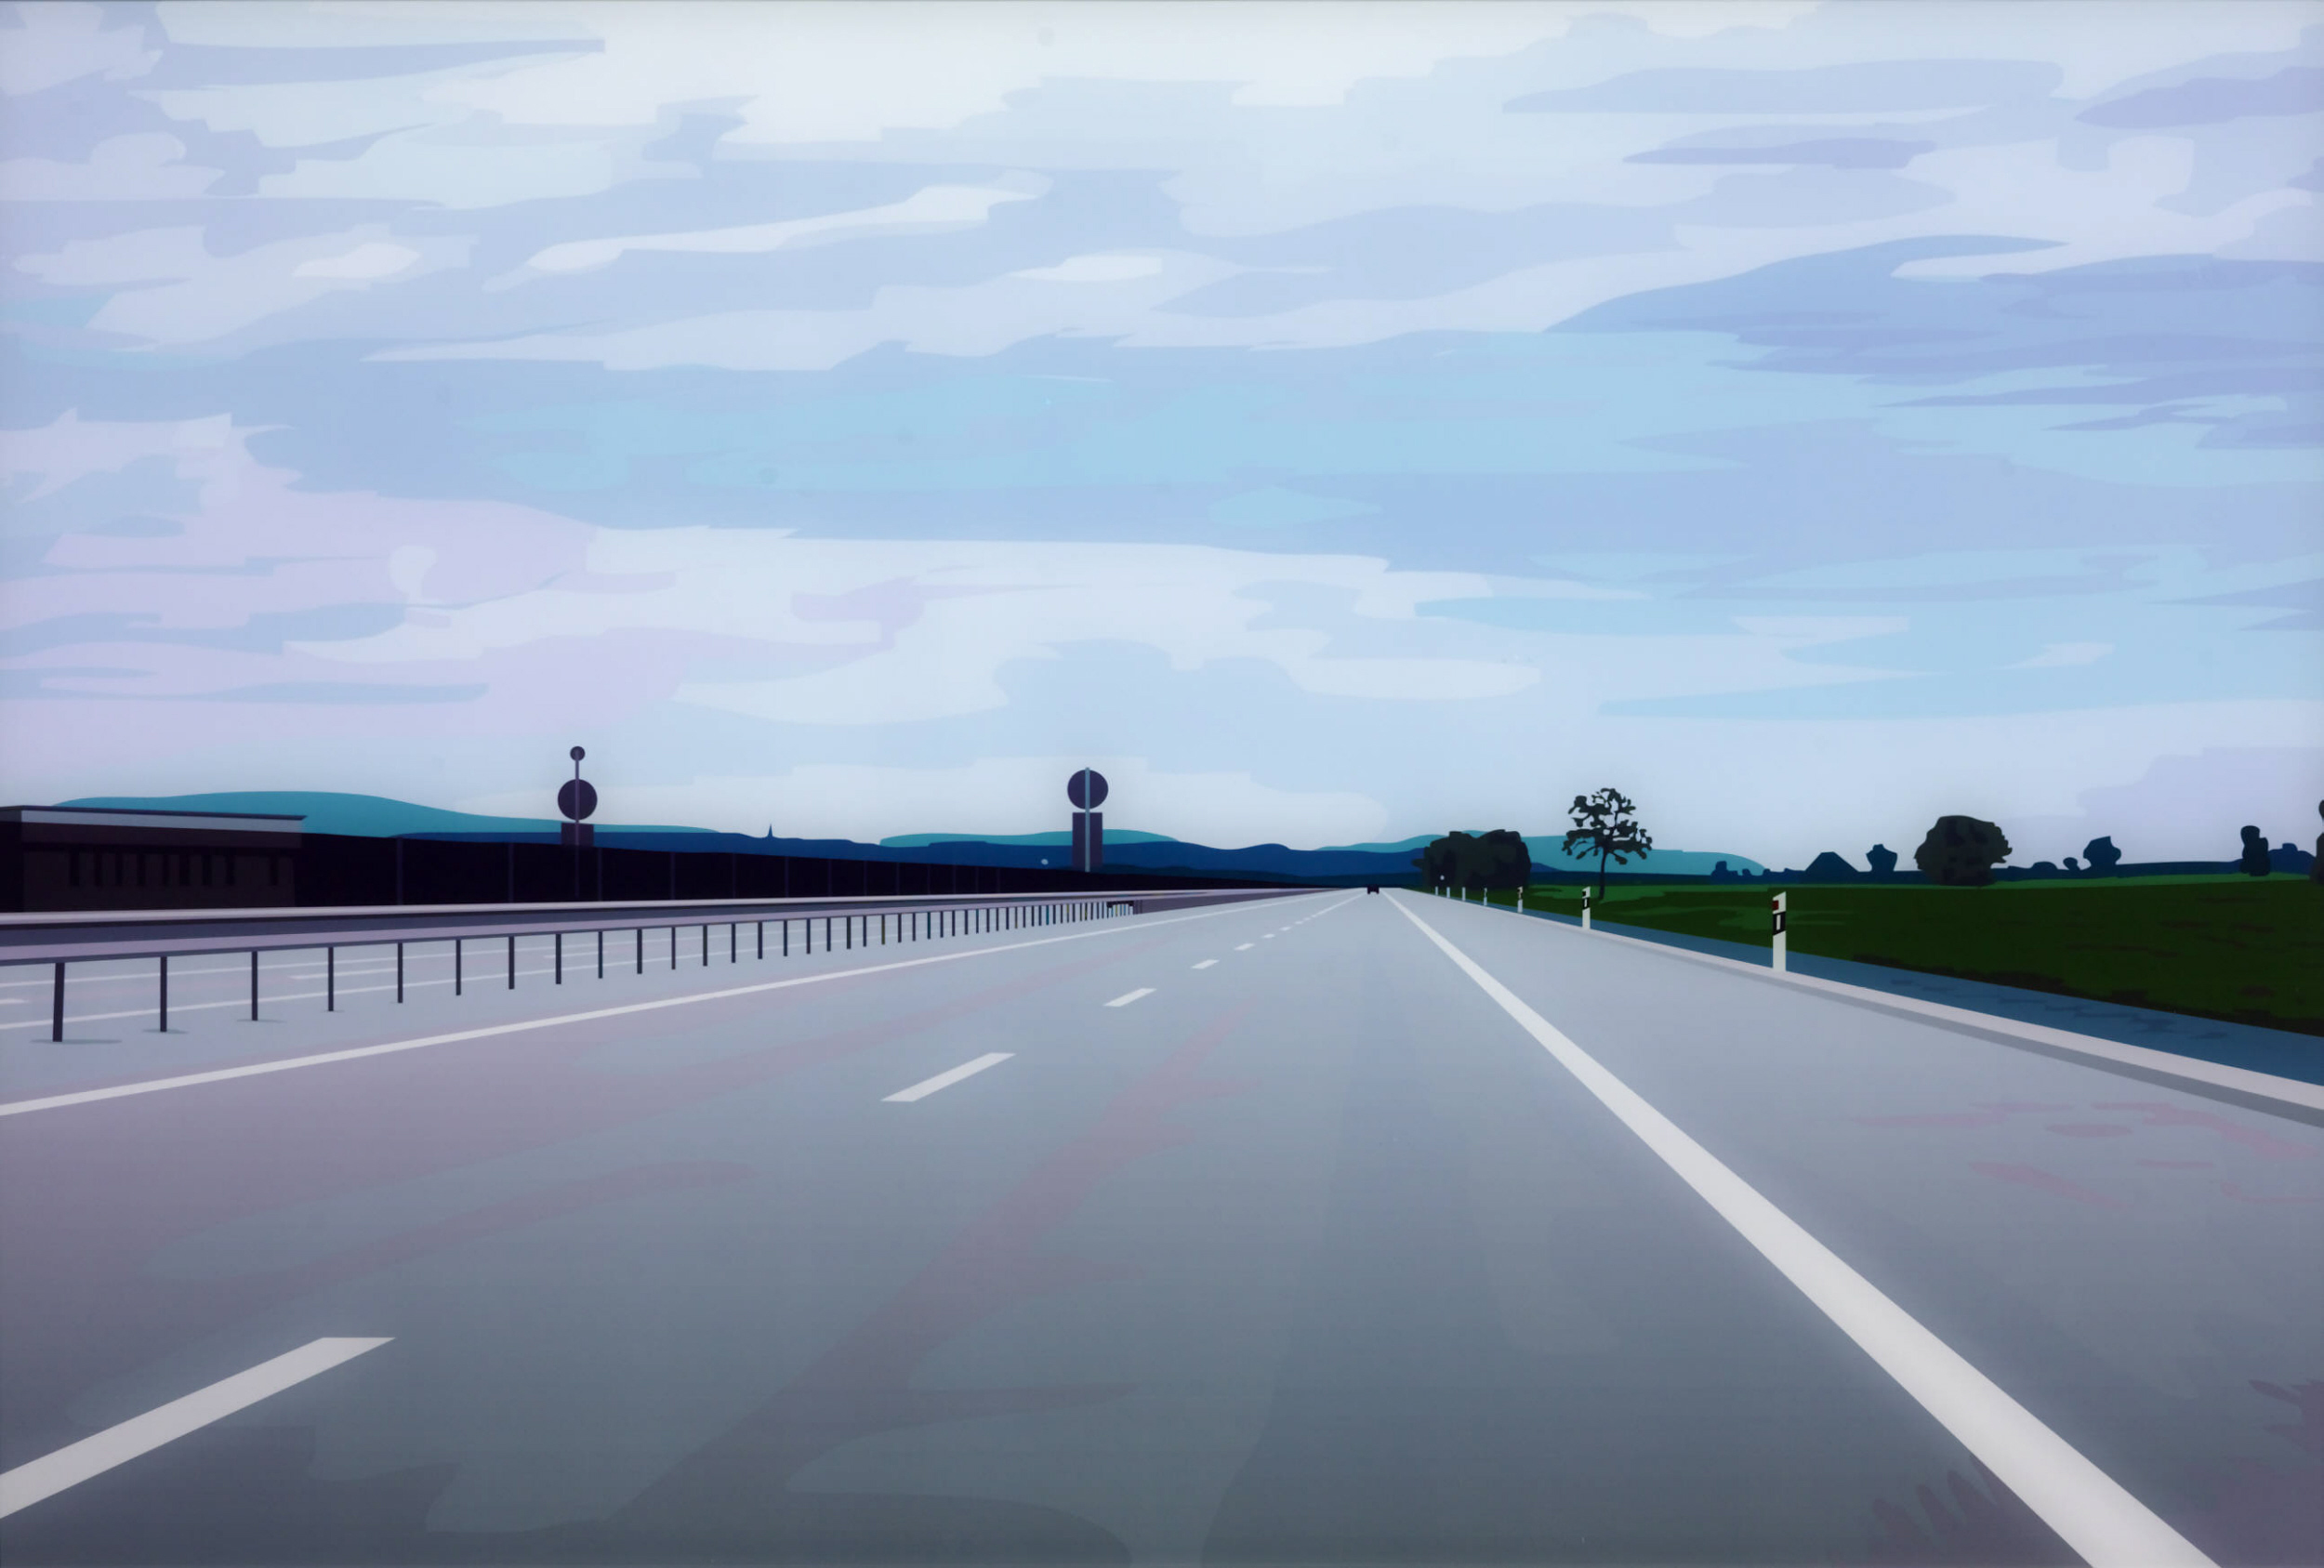 Painter Julian Opie: I've always been fascinated by landscapes